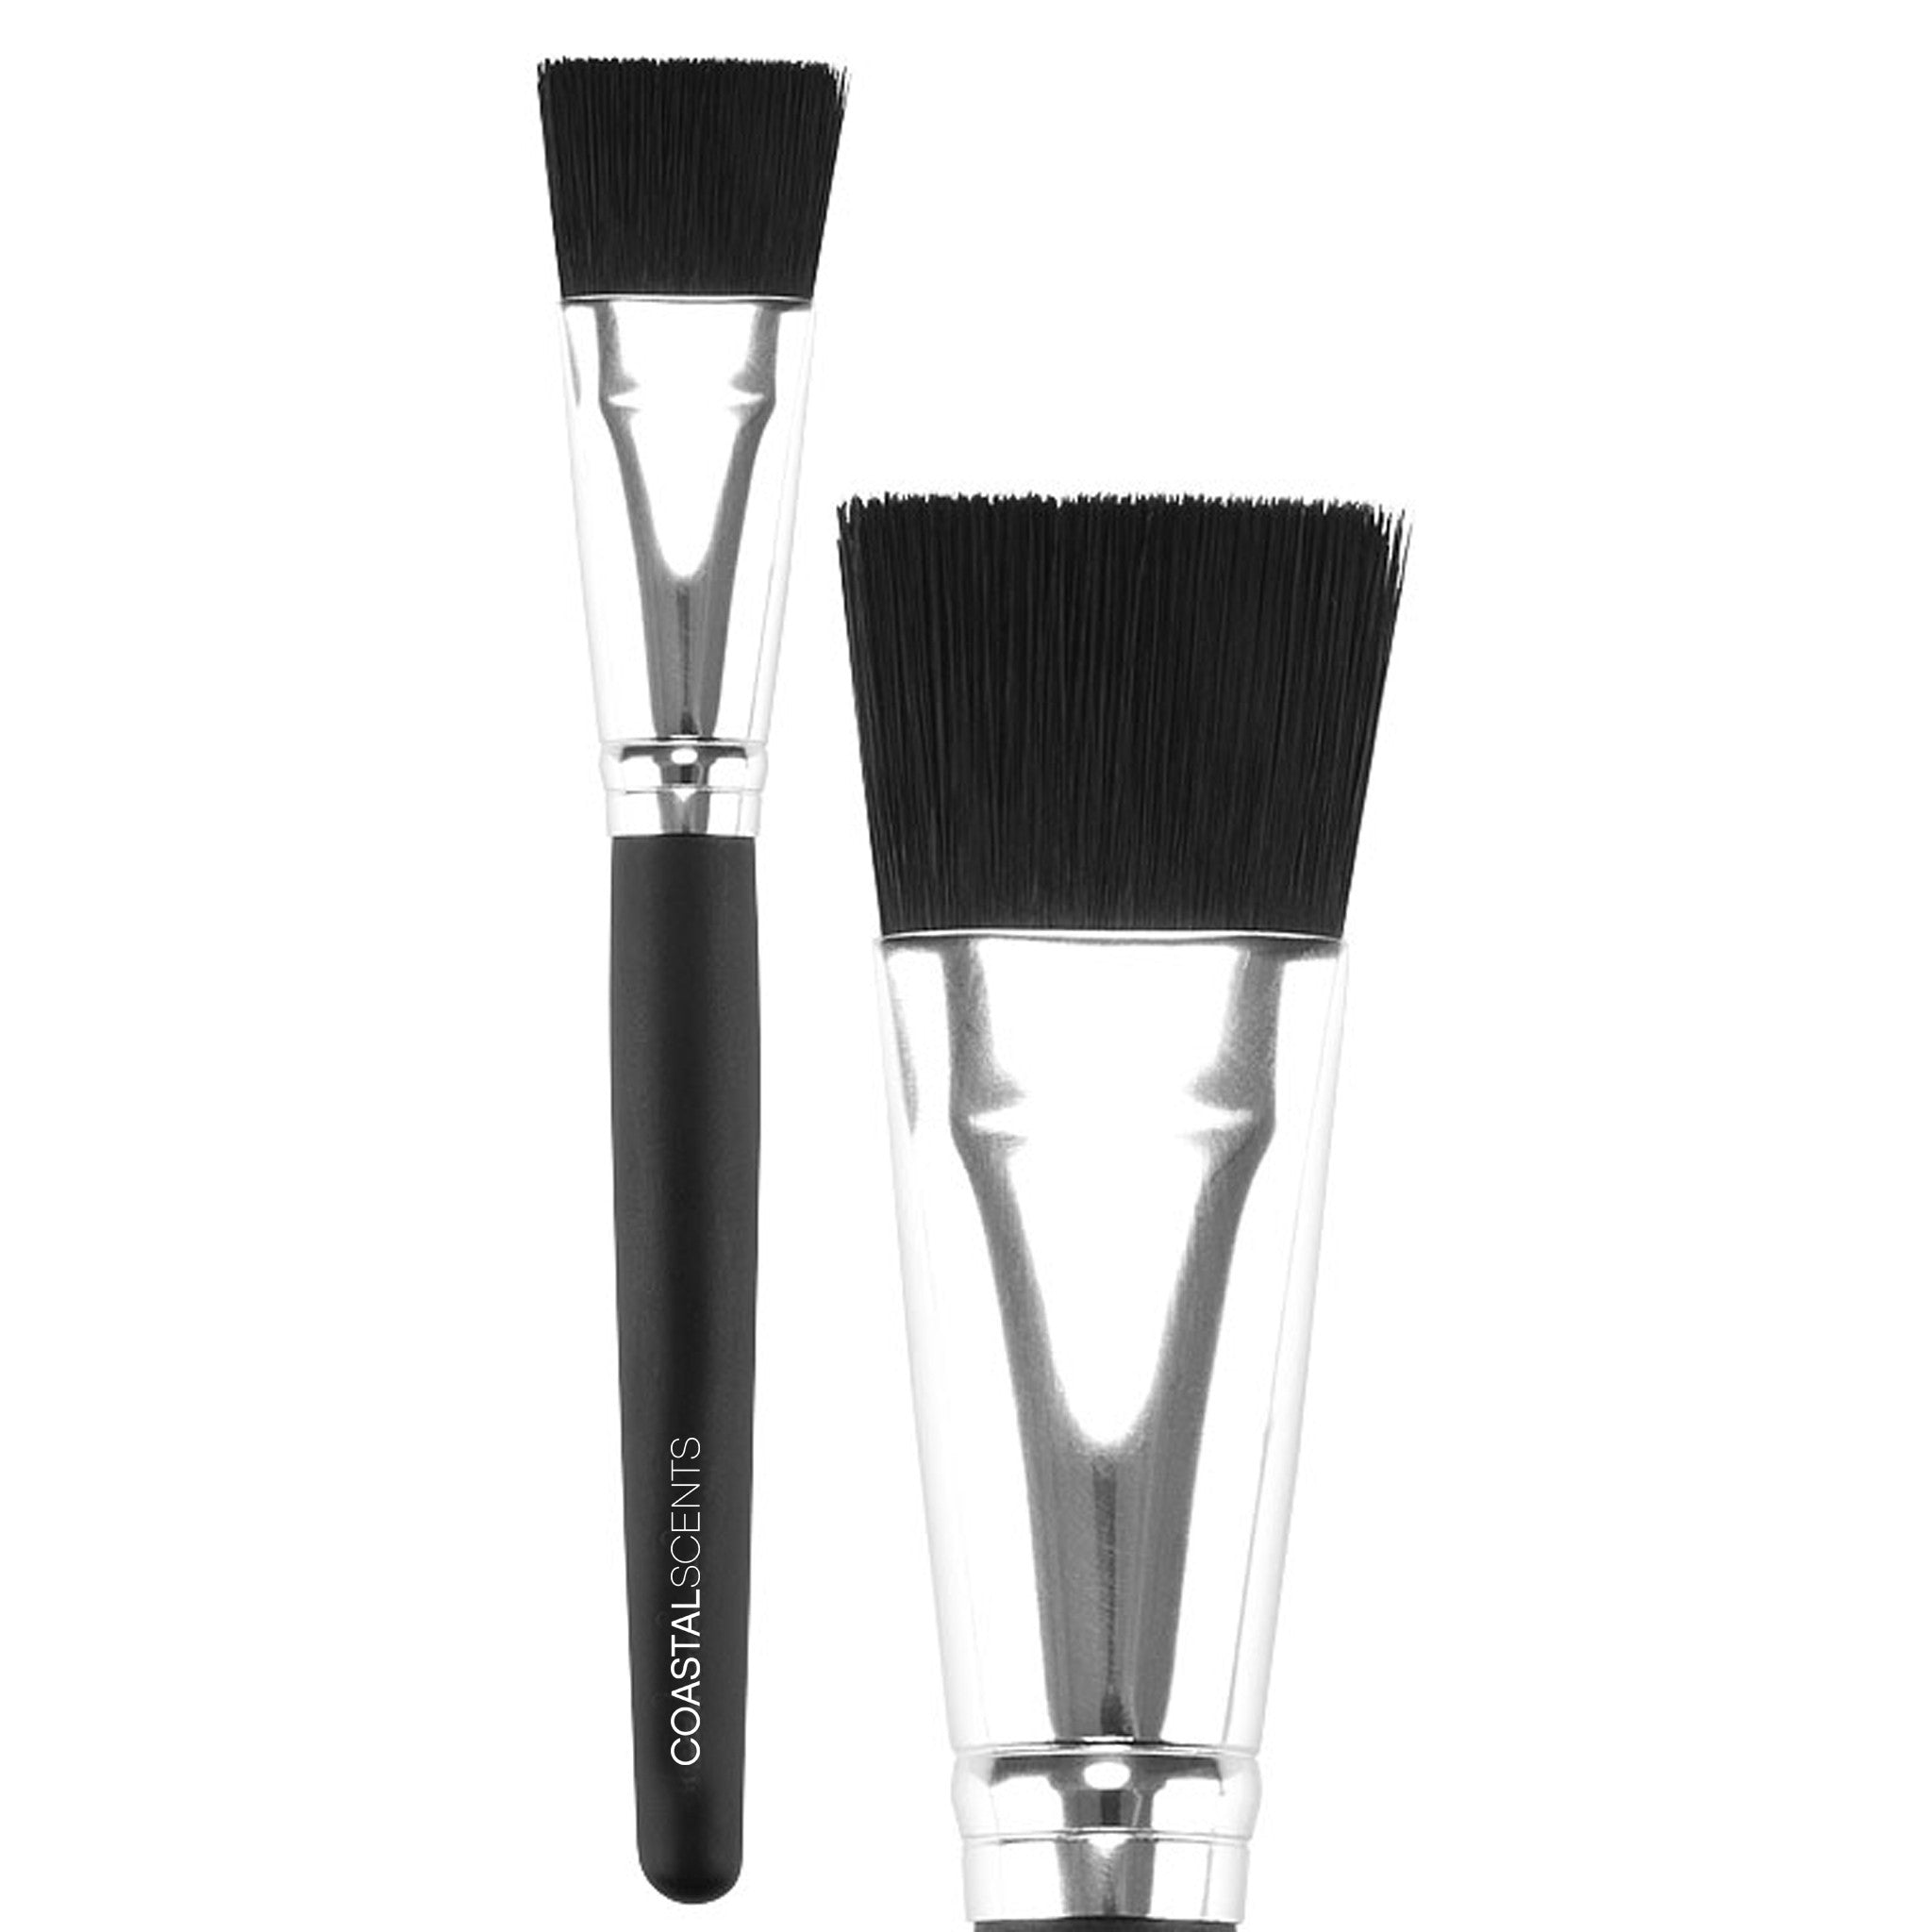 Coastal Scents coupon: Classic Flat Multipurpose Brush Synthetic